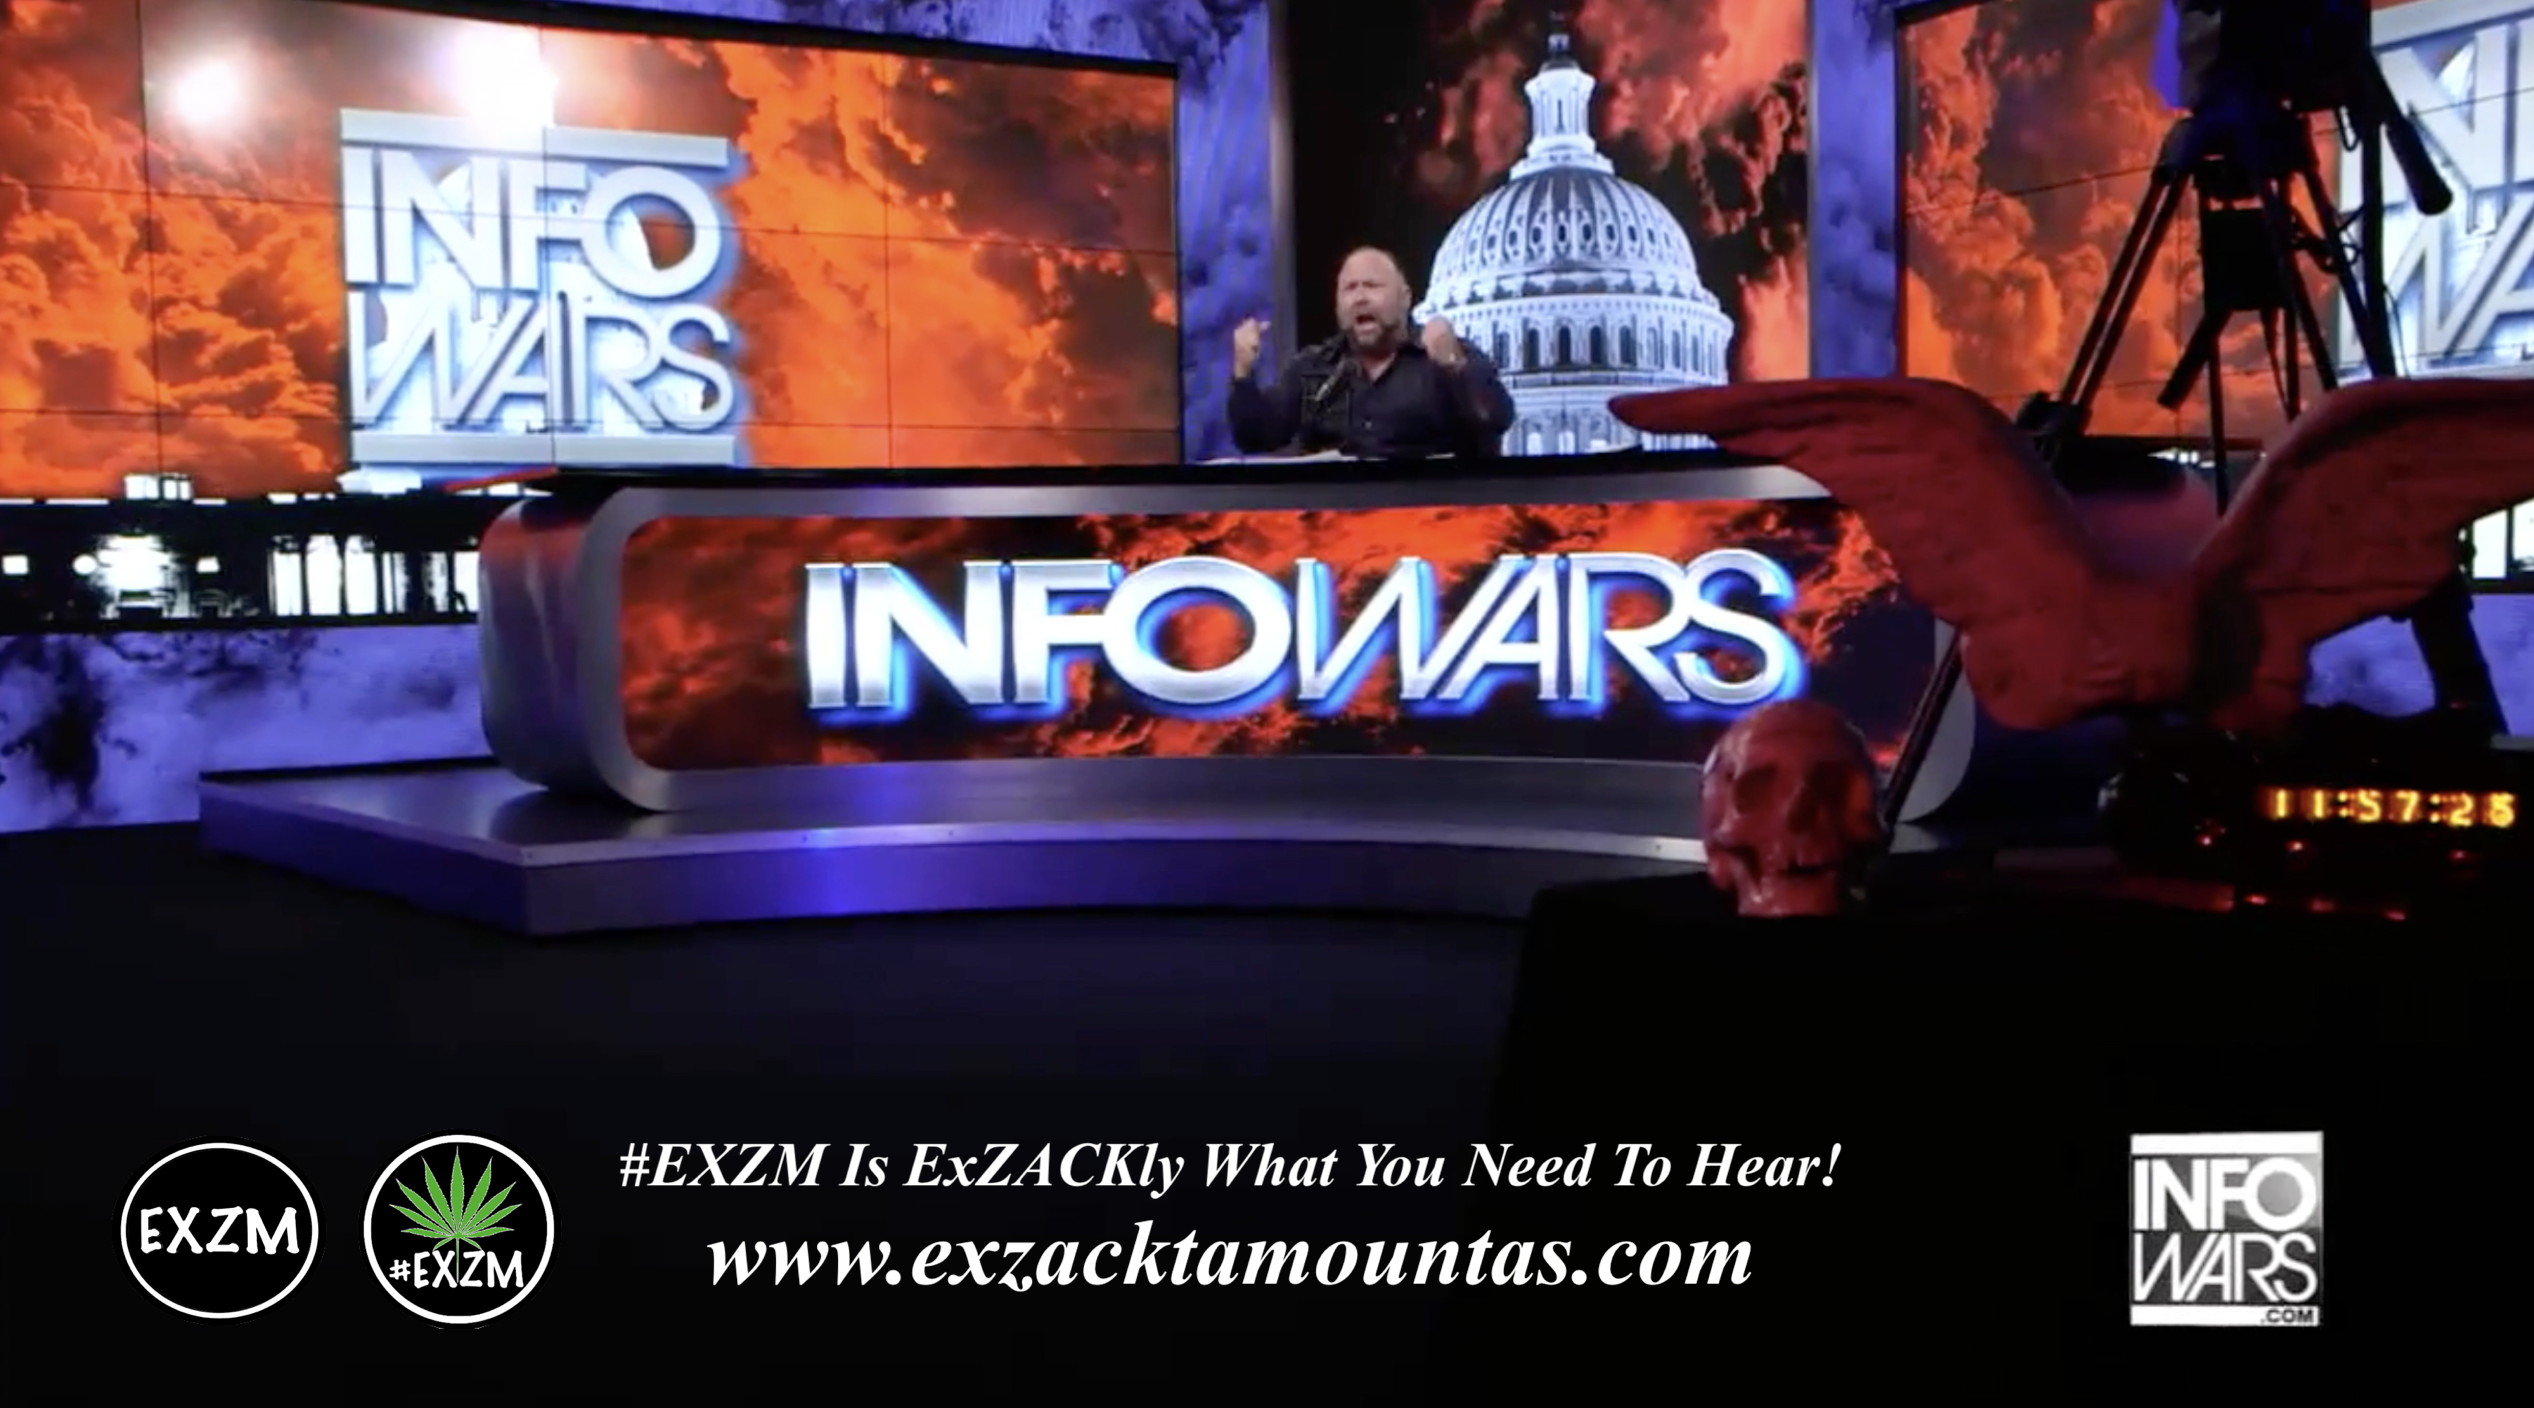 Alex Jones Live Infowars Studio EXZM Zack Mount April 15th 2021 copy